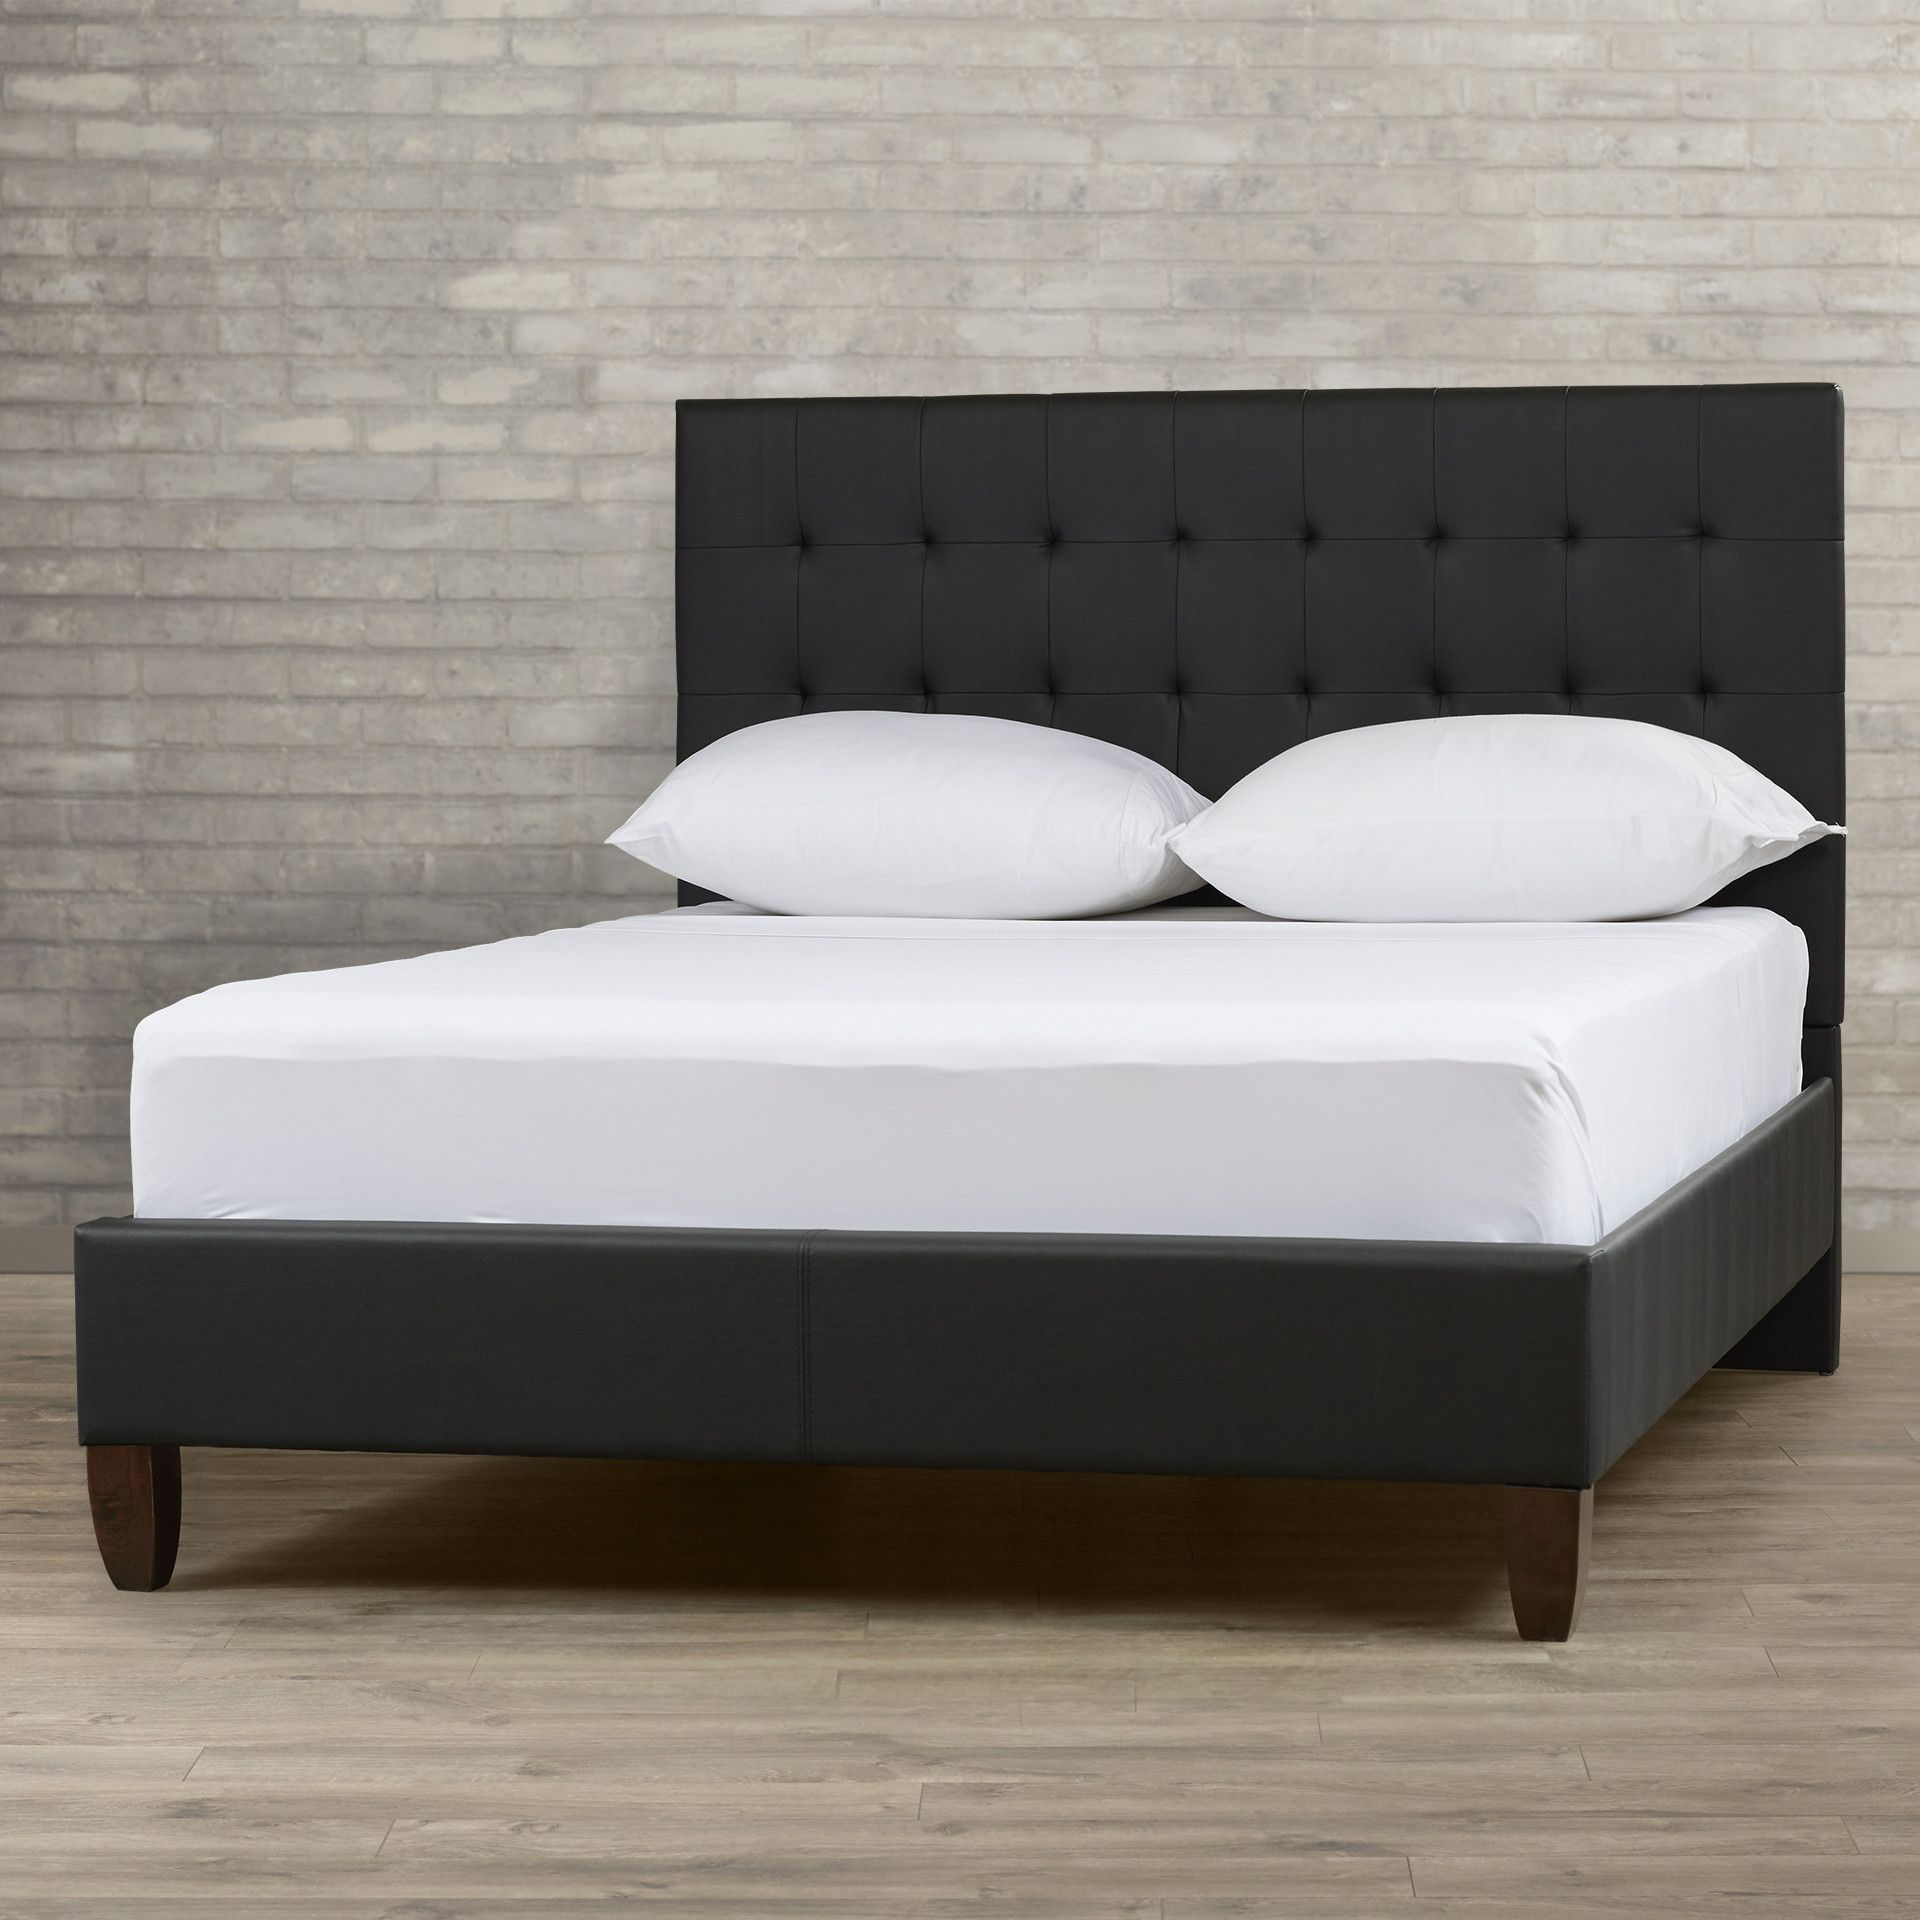 Cortez Upholstered Platform Bed Upholstered platform bed